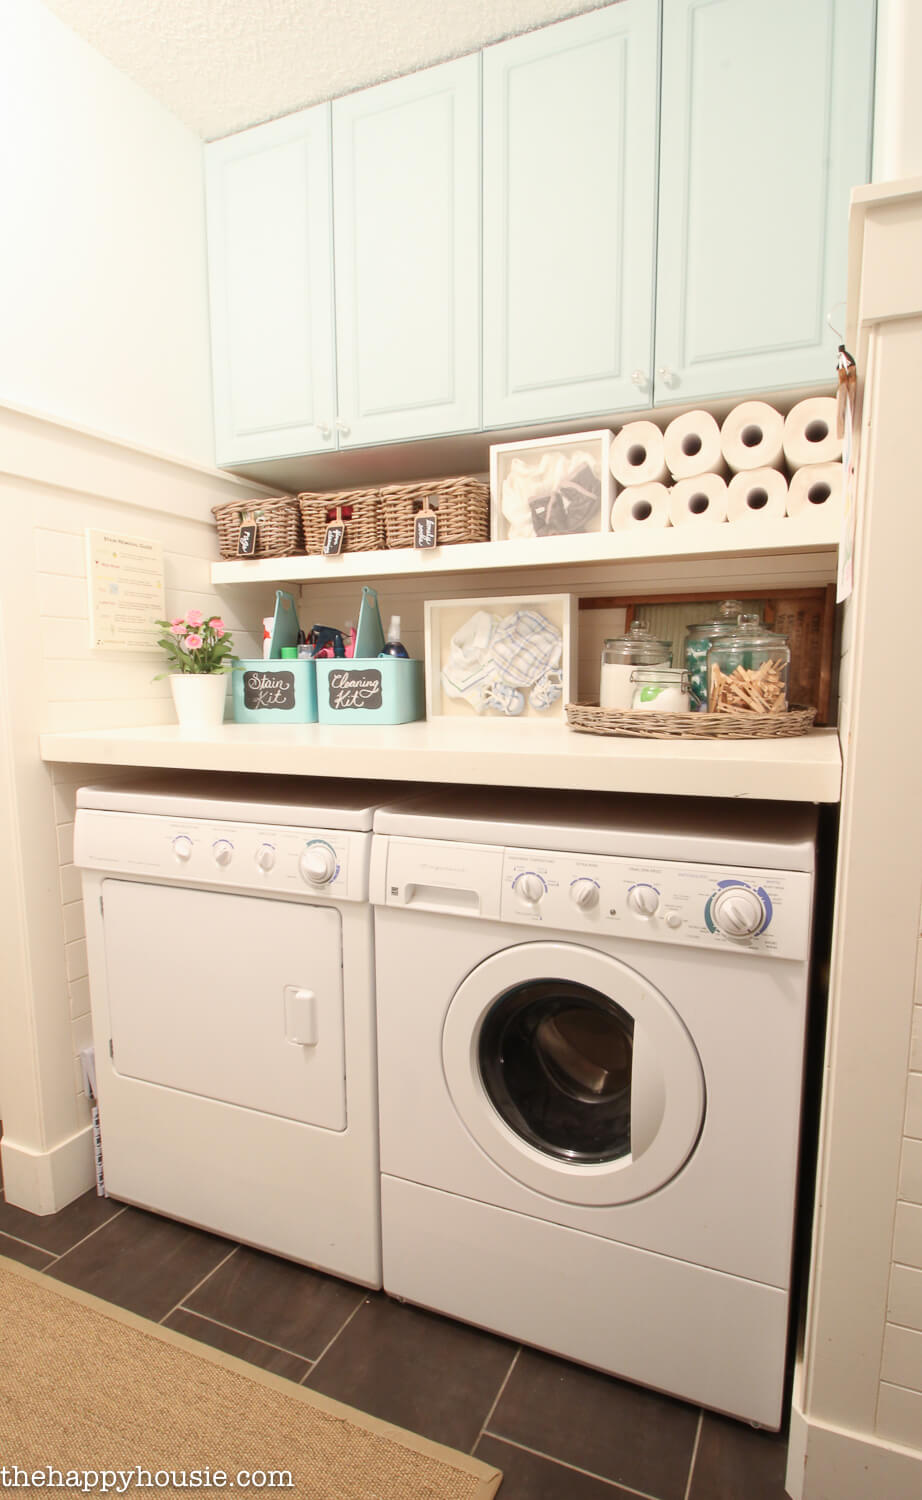 28 Best Small Laundry Room Design Ideas for 2020 on Laundry Room Decor Ideas  id=50588